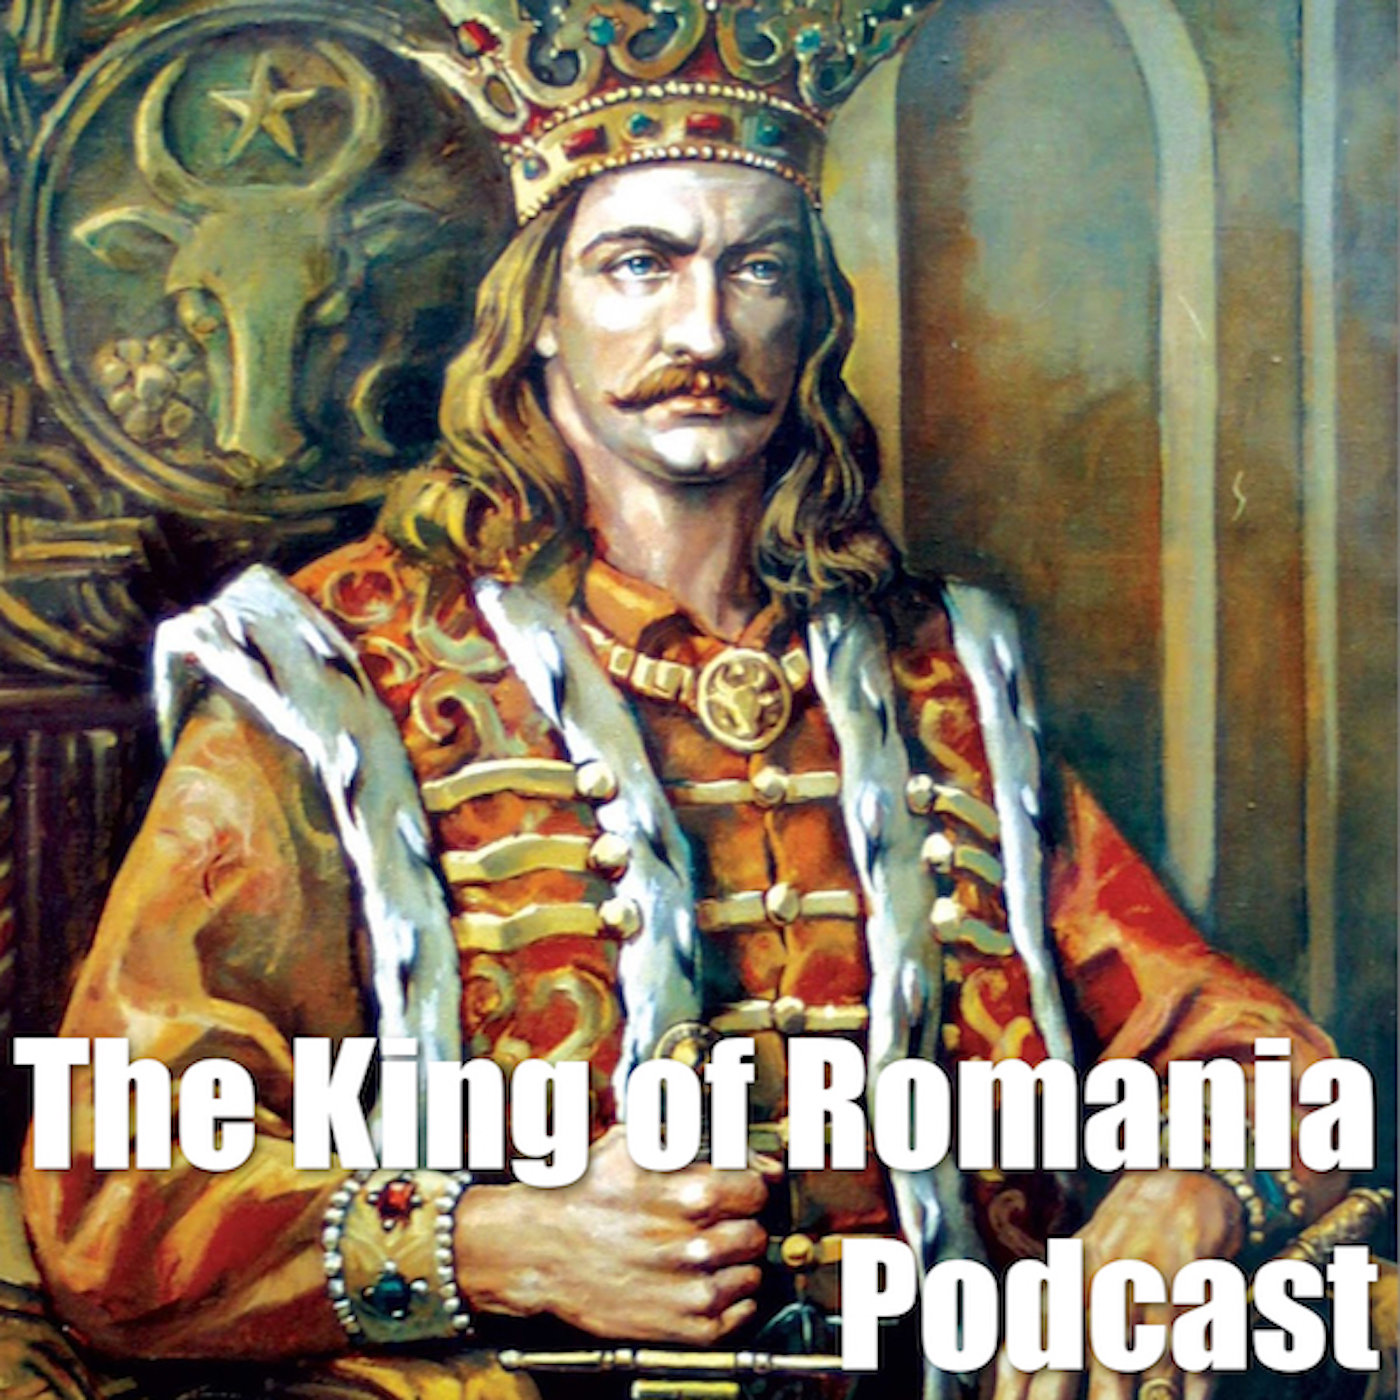 The King of Romania Podcast